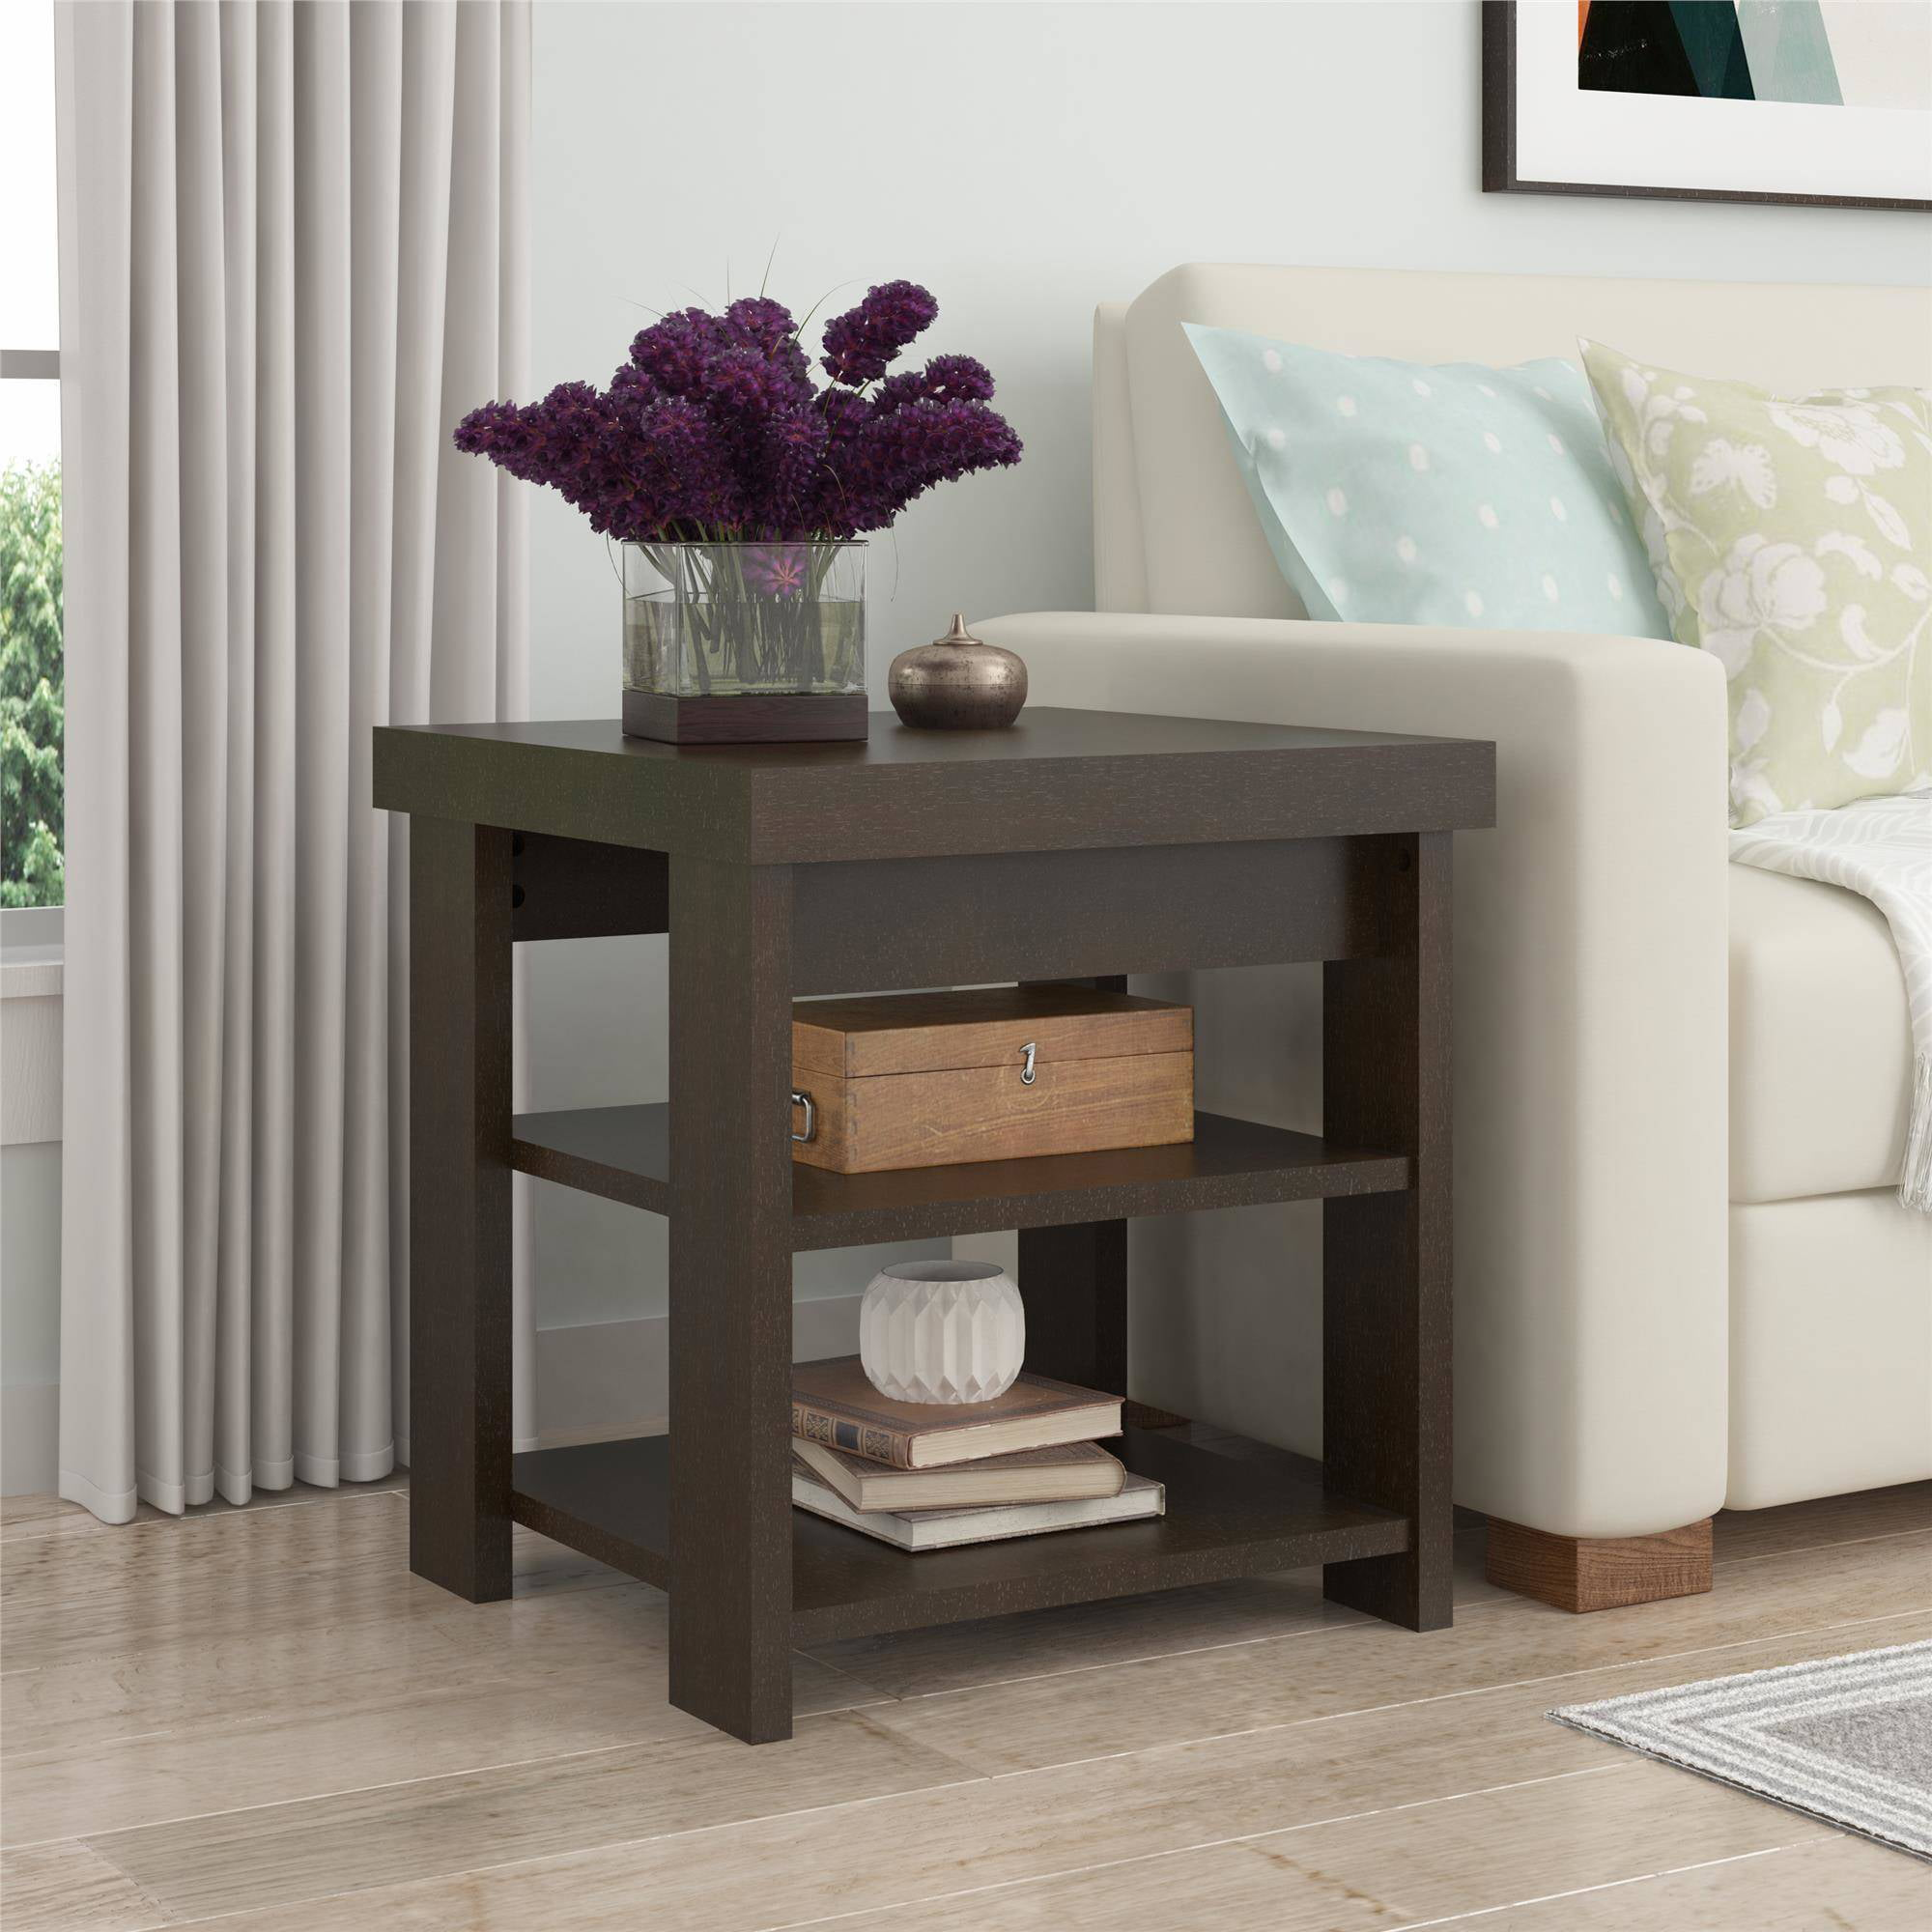 Ameriwood Home Jensen End Table, Multiple Colors by Ameriwood